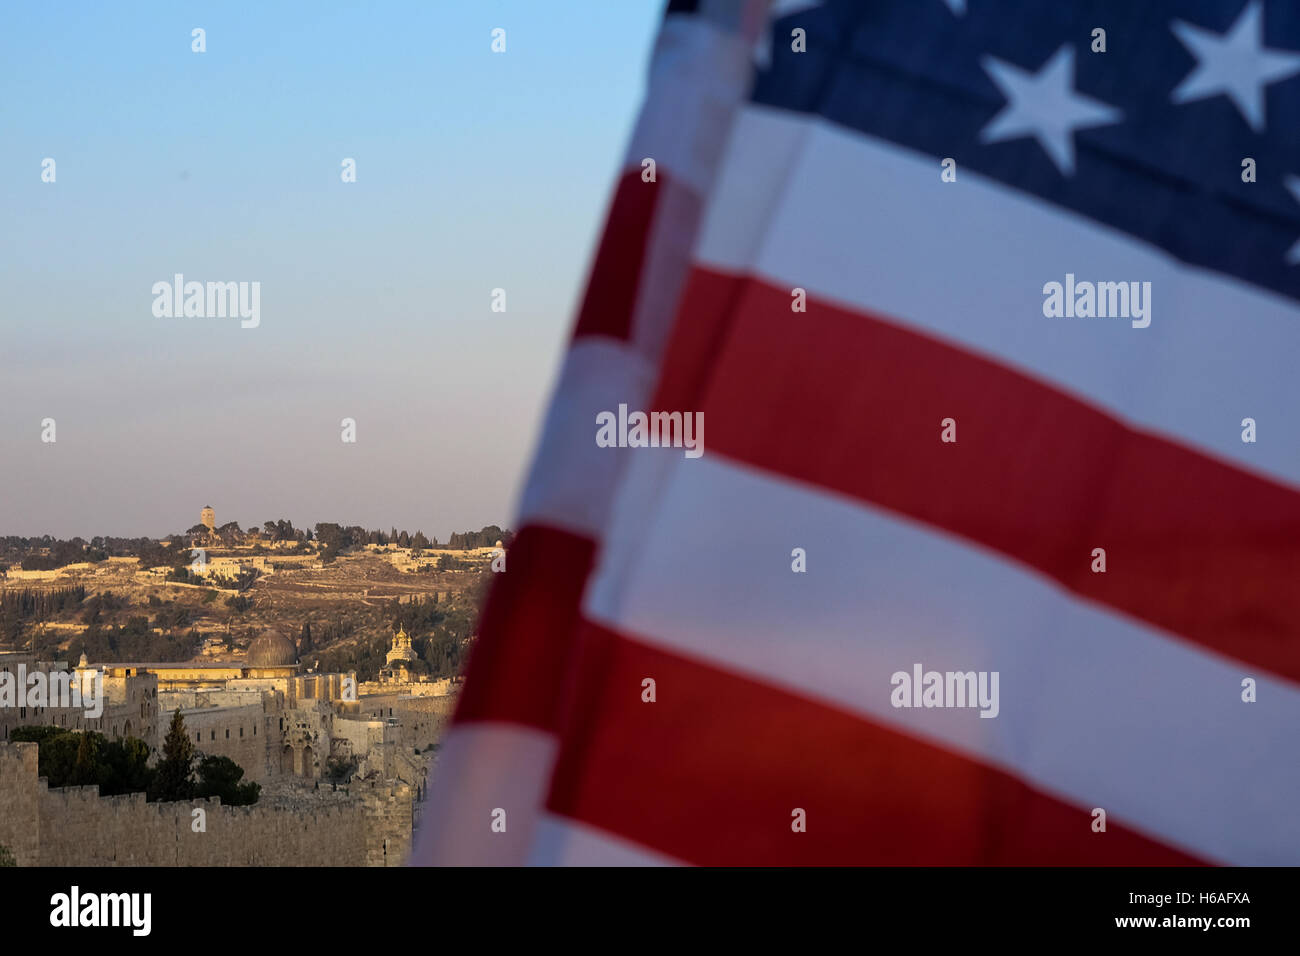 Jerusalem, Israel. 26th October, 2016. The American flag flies over the Old City overlooking the Al Aqsa Mosque - Stock Image